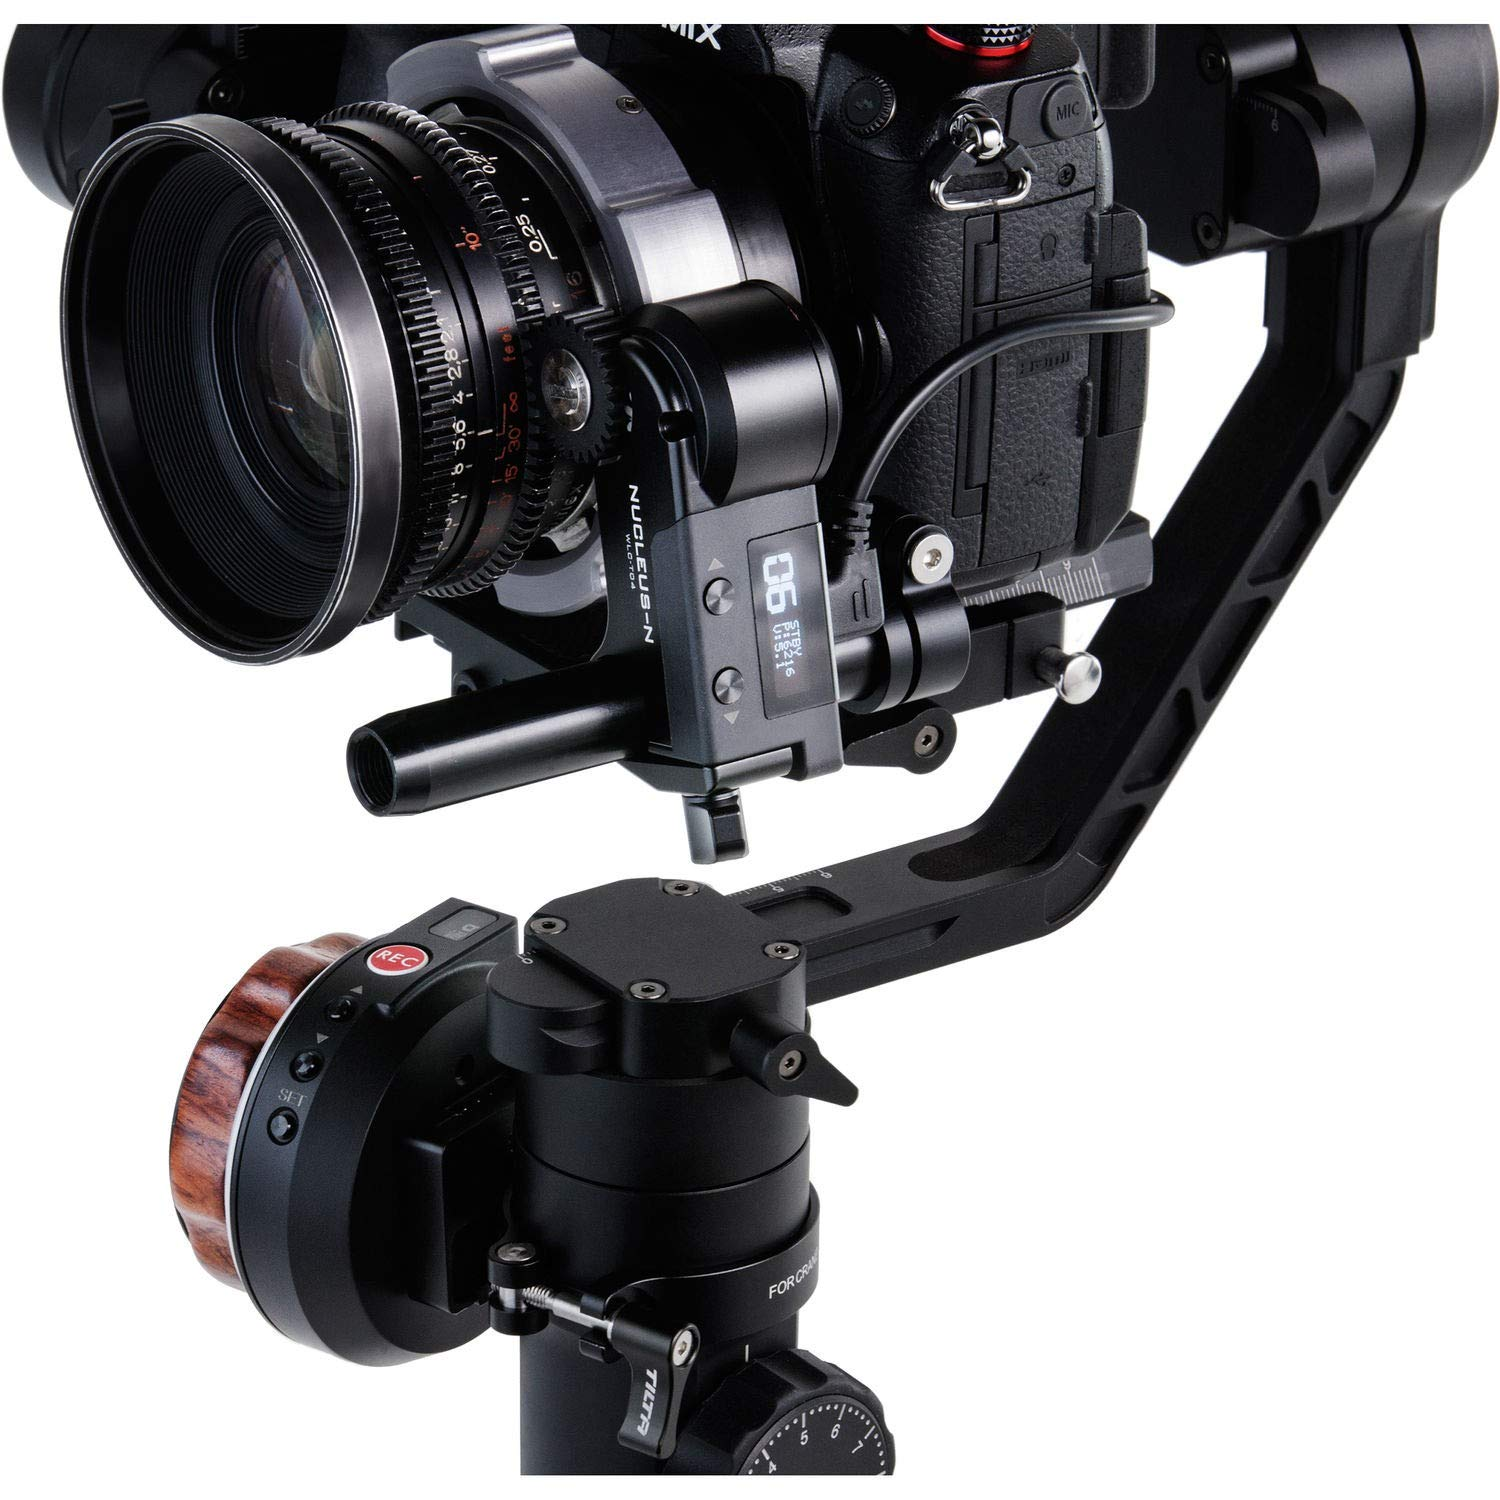 Gimbal Such As Ronin S Mirrorless or Cine-Style Lenses on Cage Tilta Nucleus-Nano Wireless Focus Control System to Wirelessly Control The Focus of Most DSLR